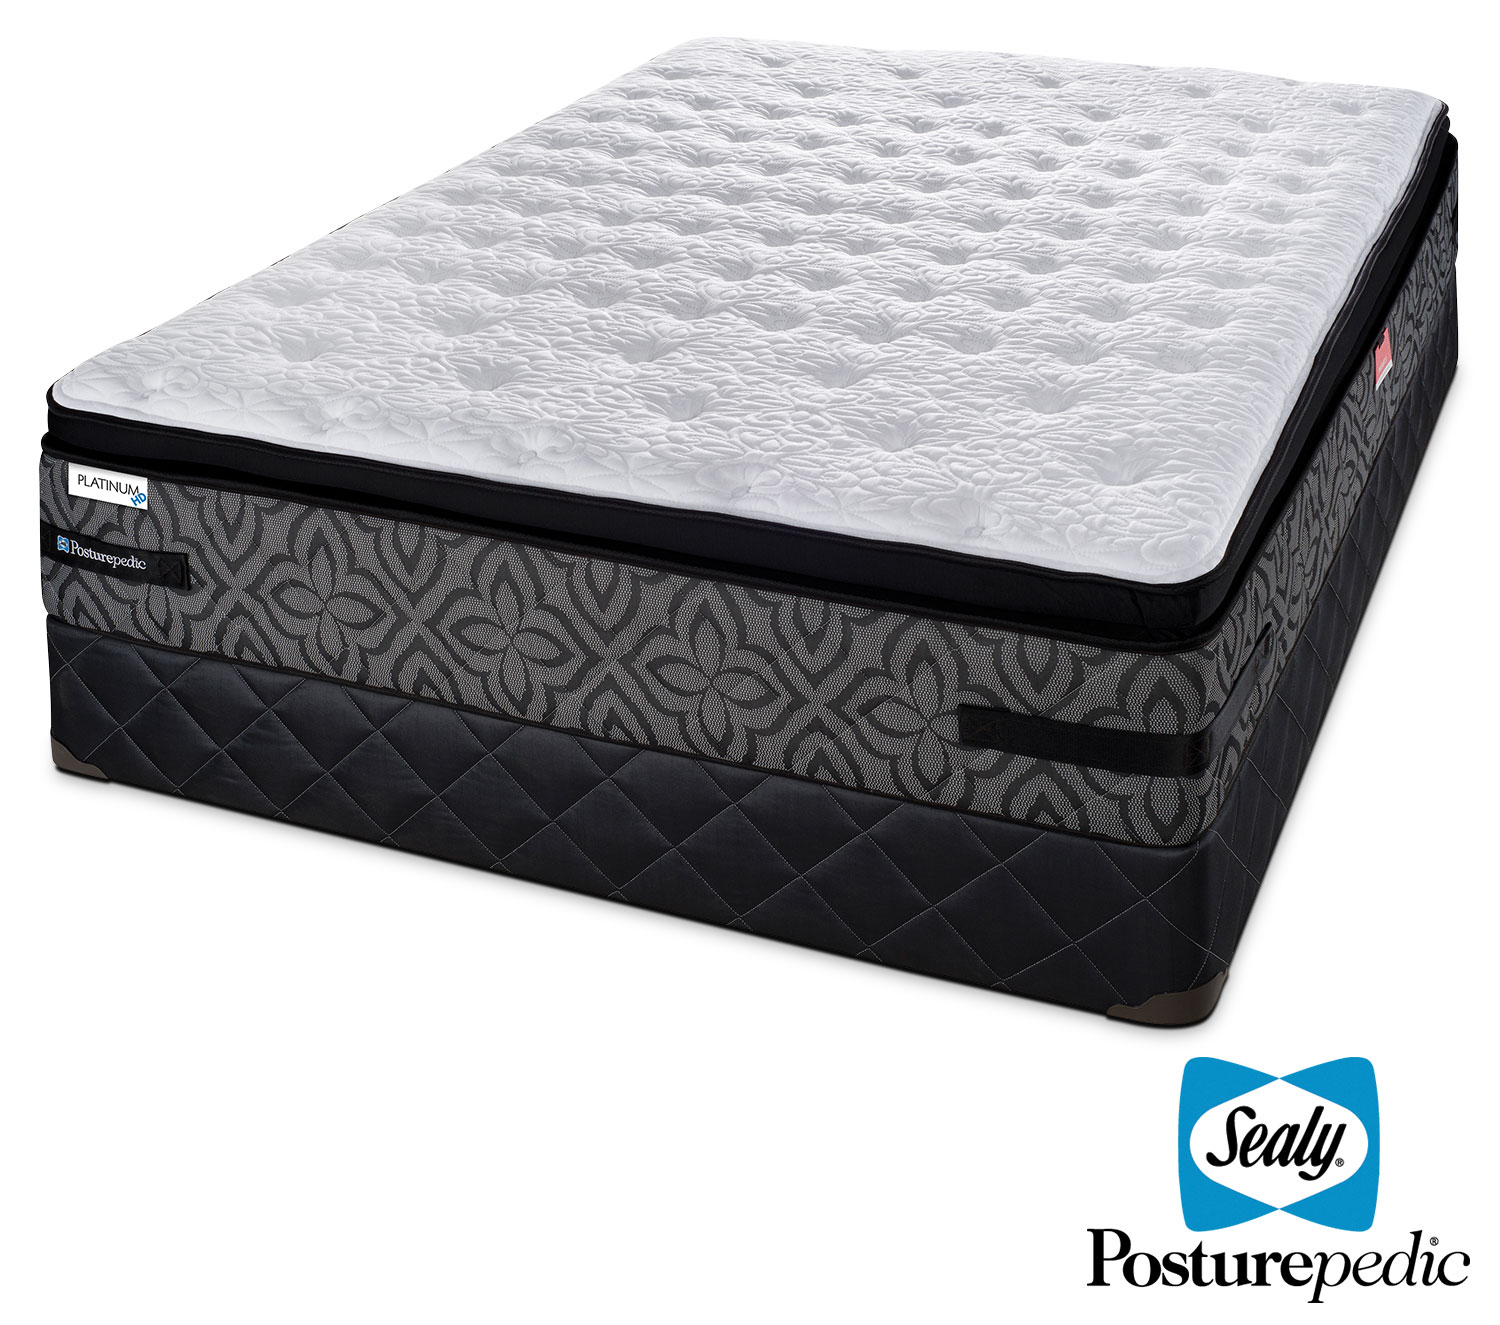 Mattresses and Bedding - Sealy Posturepedic 2 K Firm Full Mattress and Boxspring Set